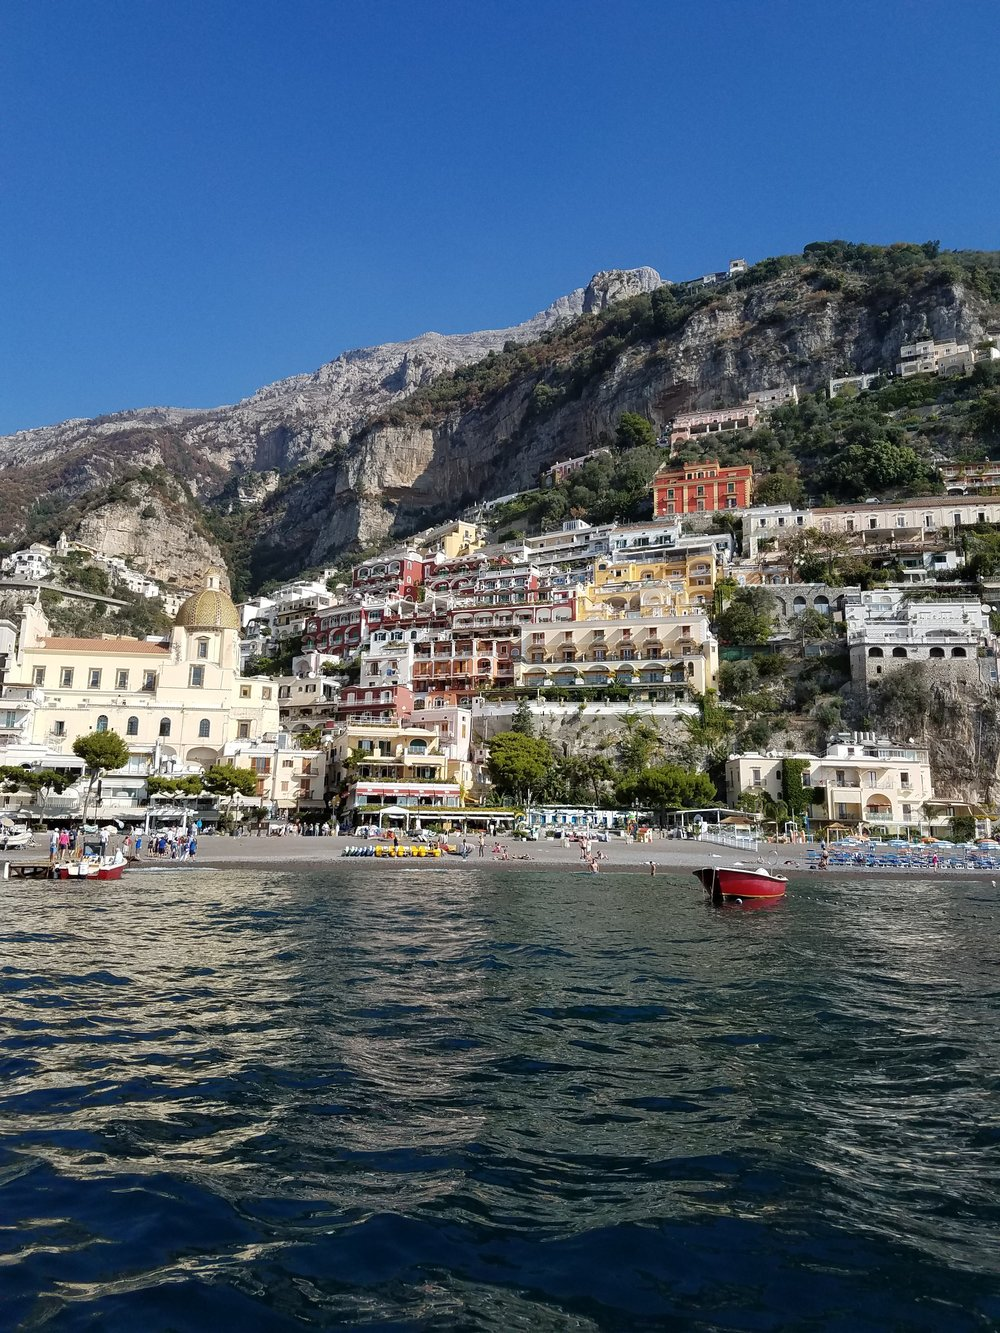 Positano from the Sea.jpg